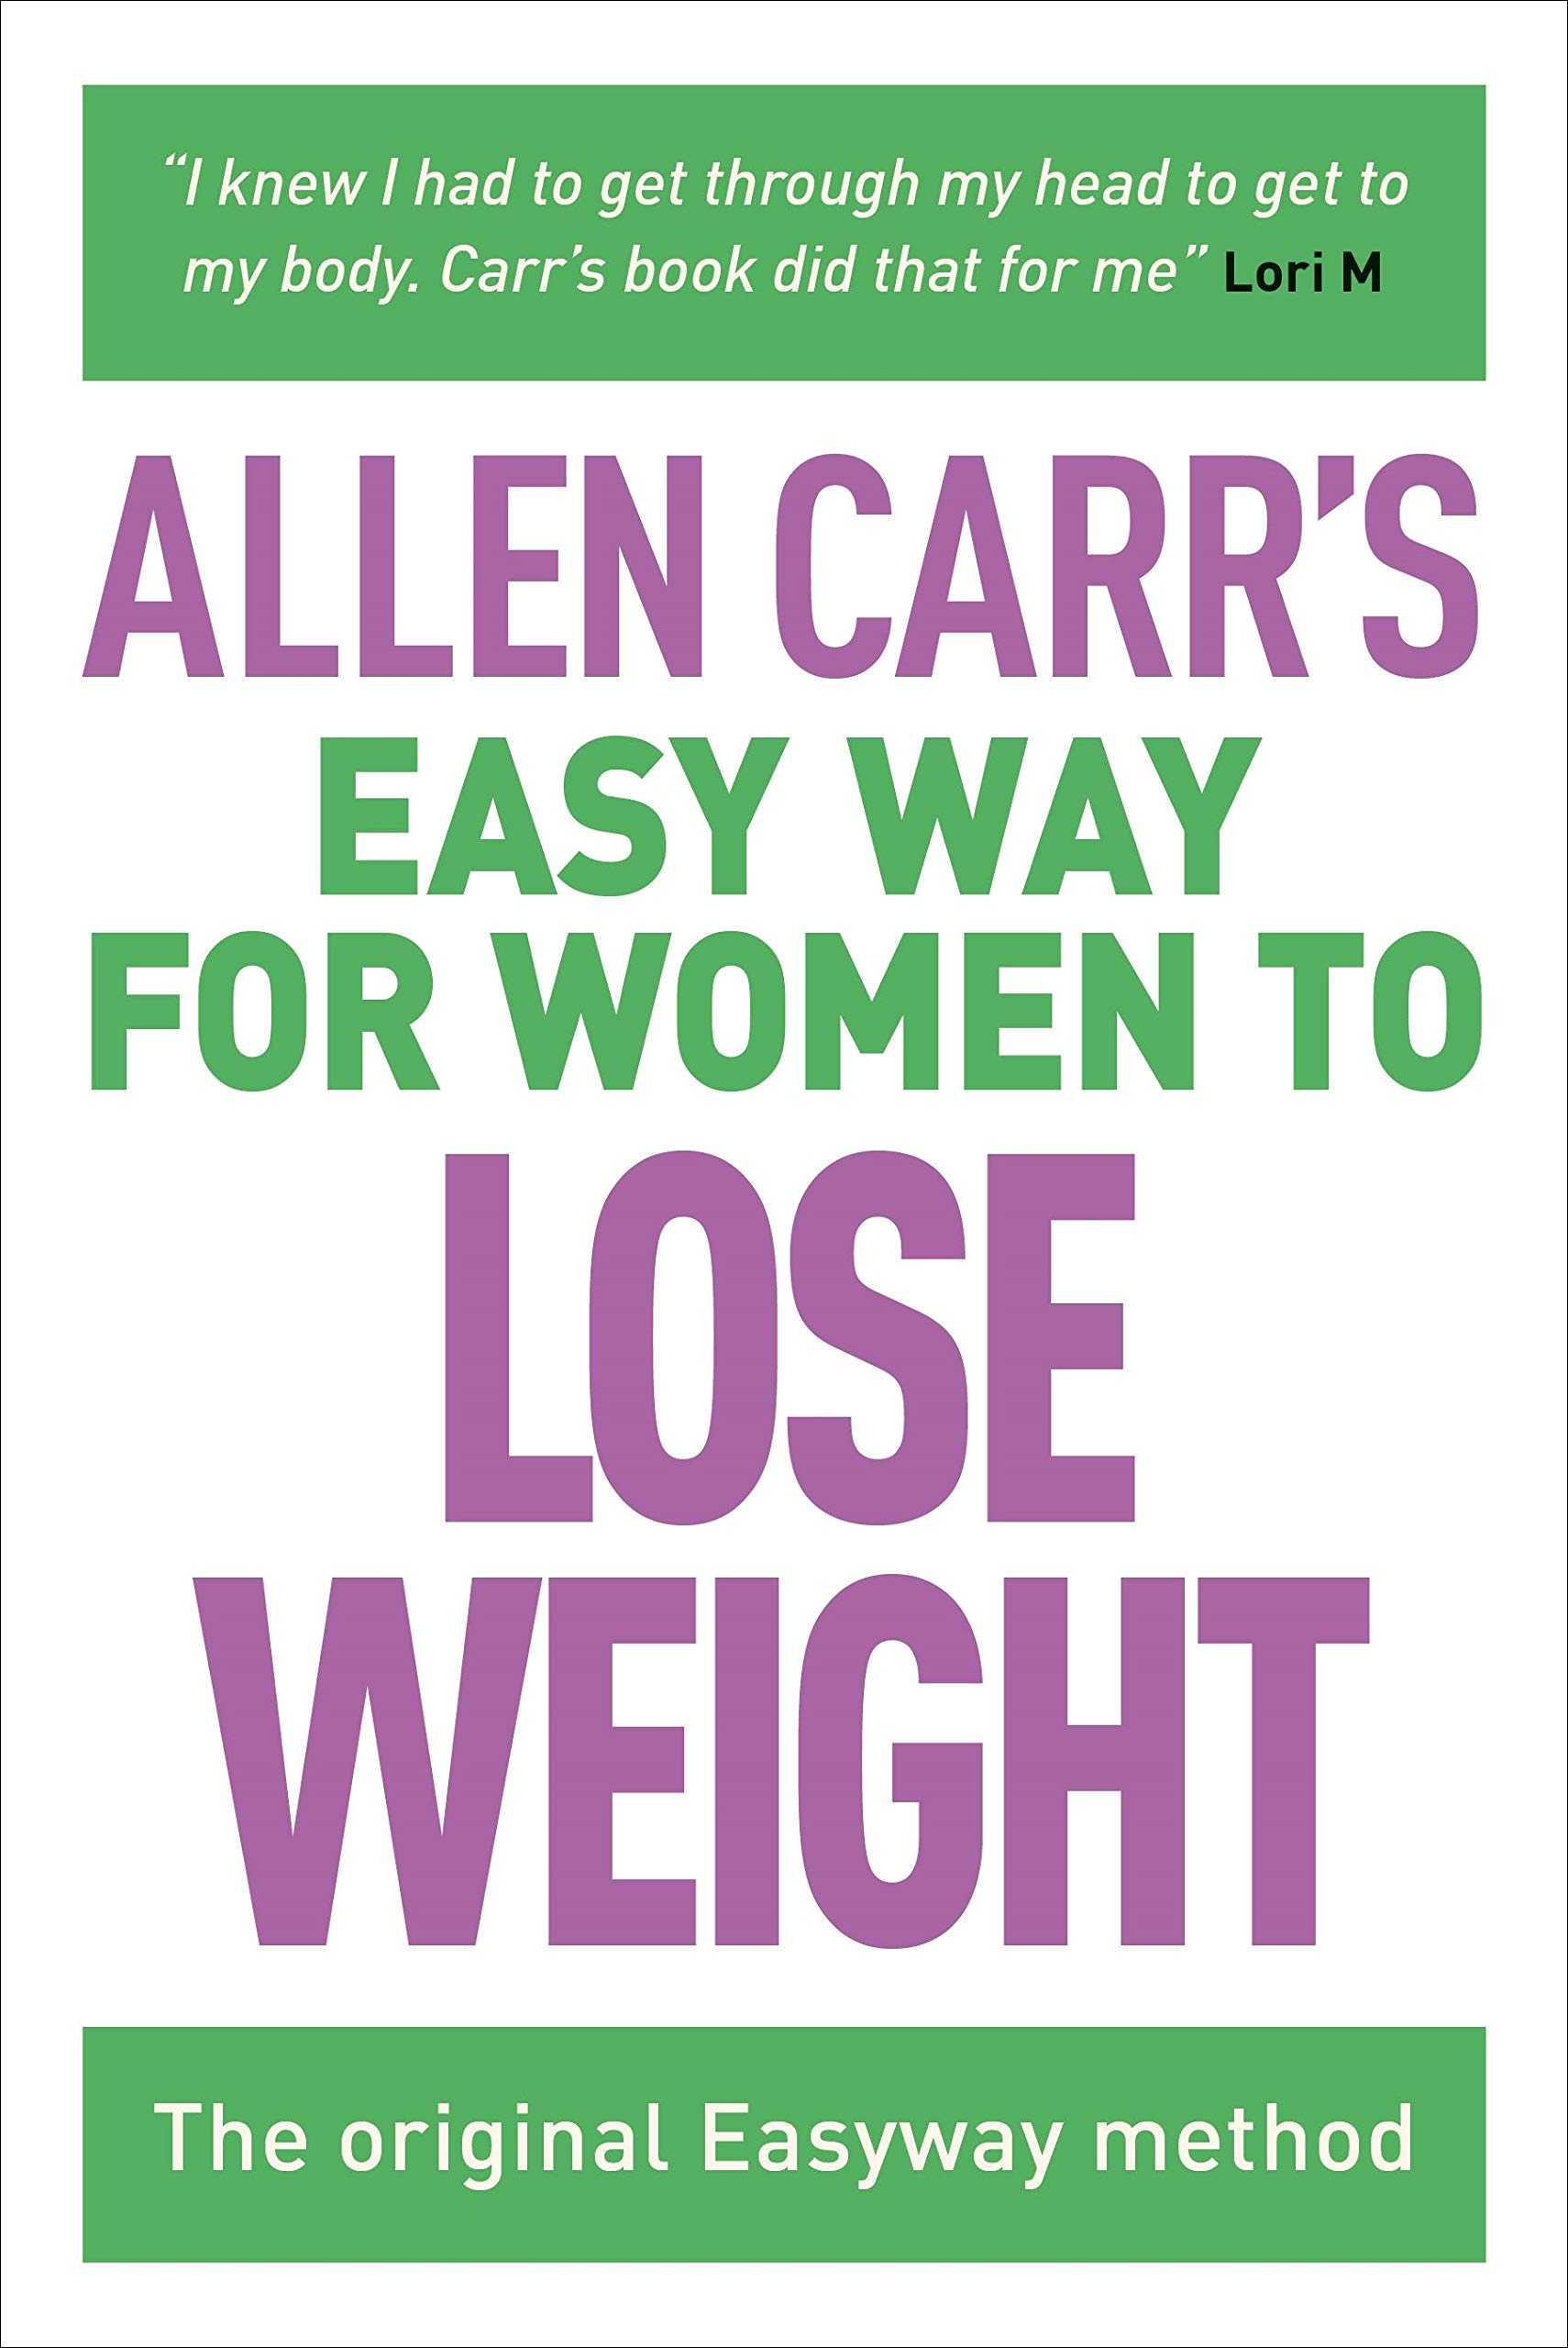 Easiest way to drop weight